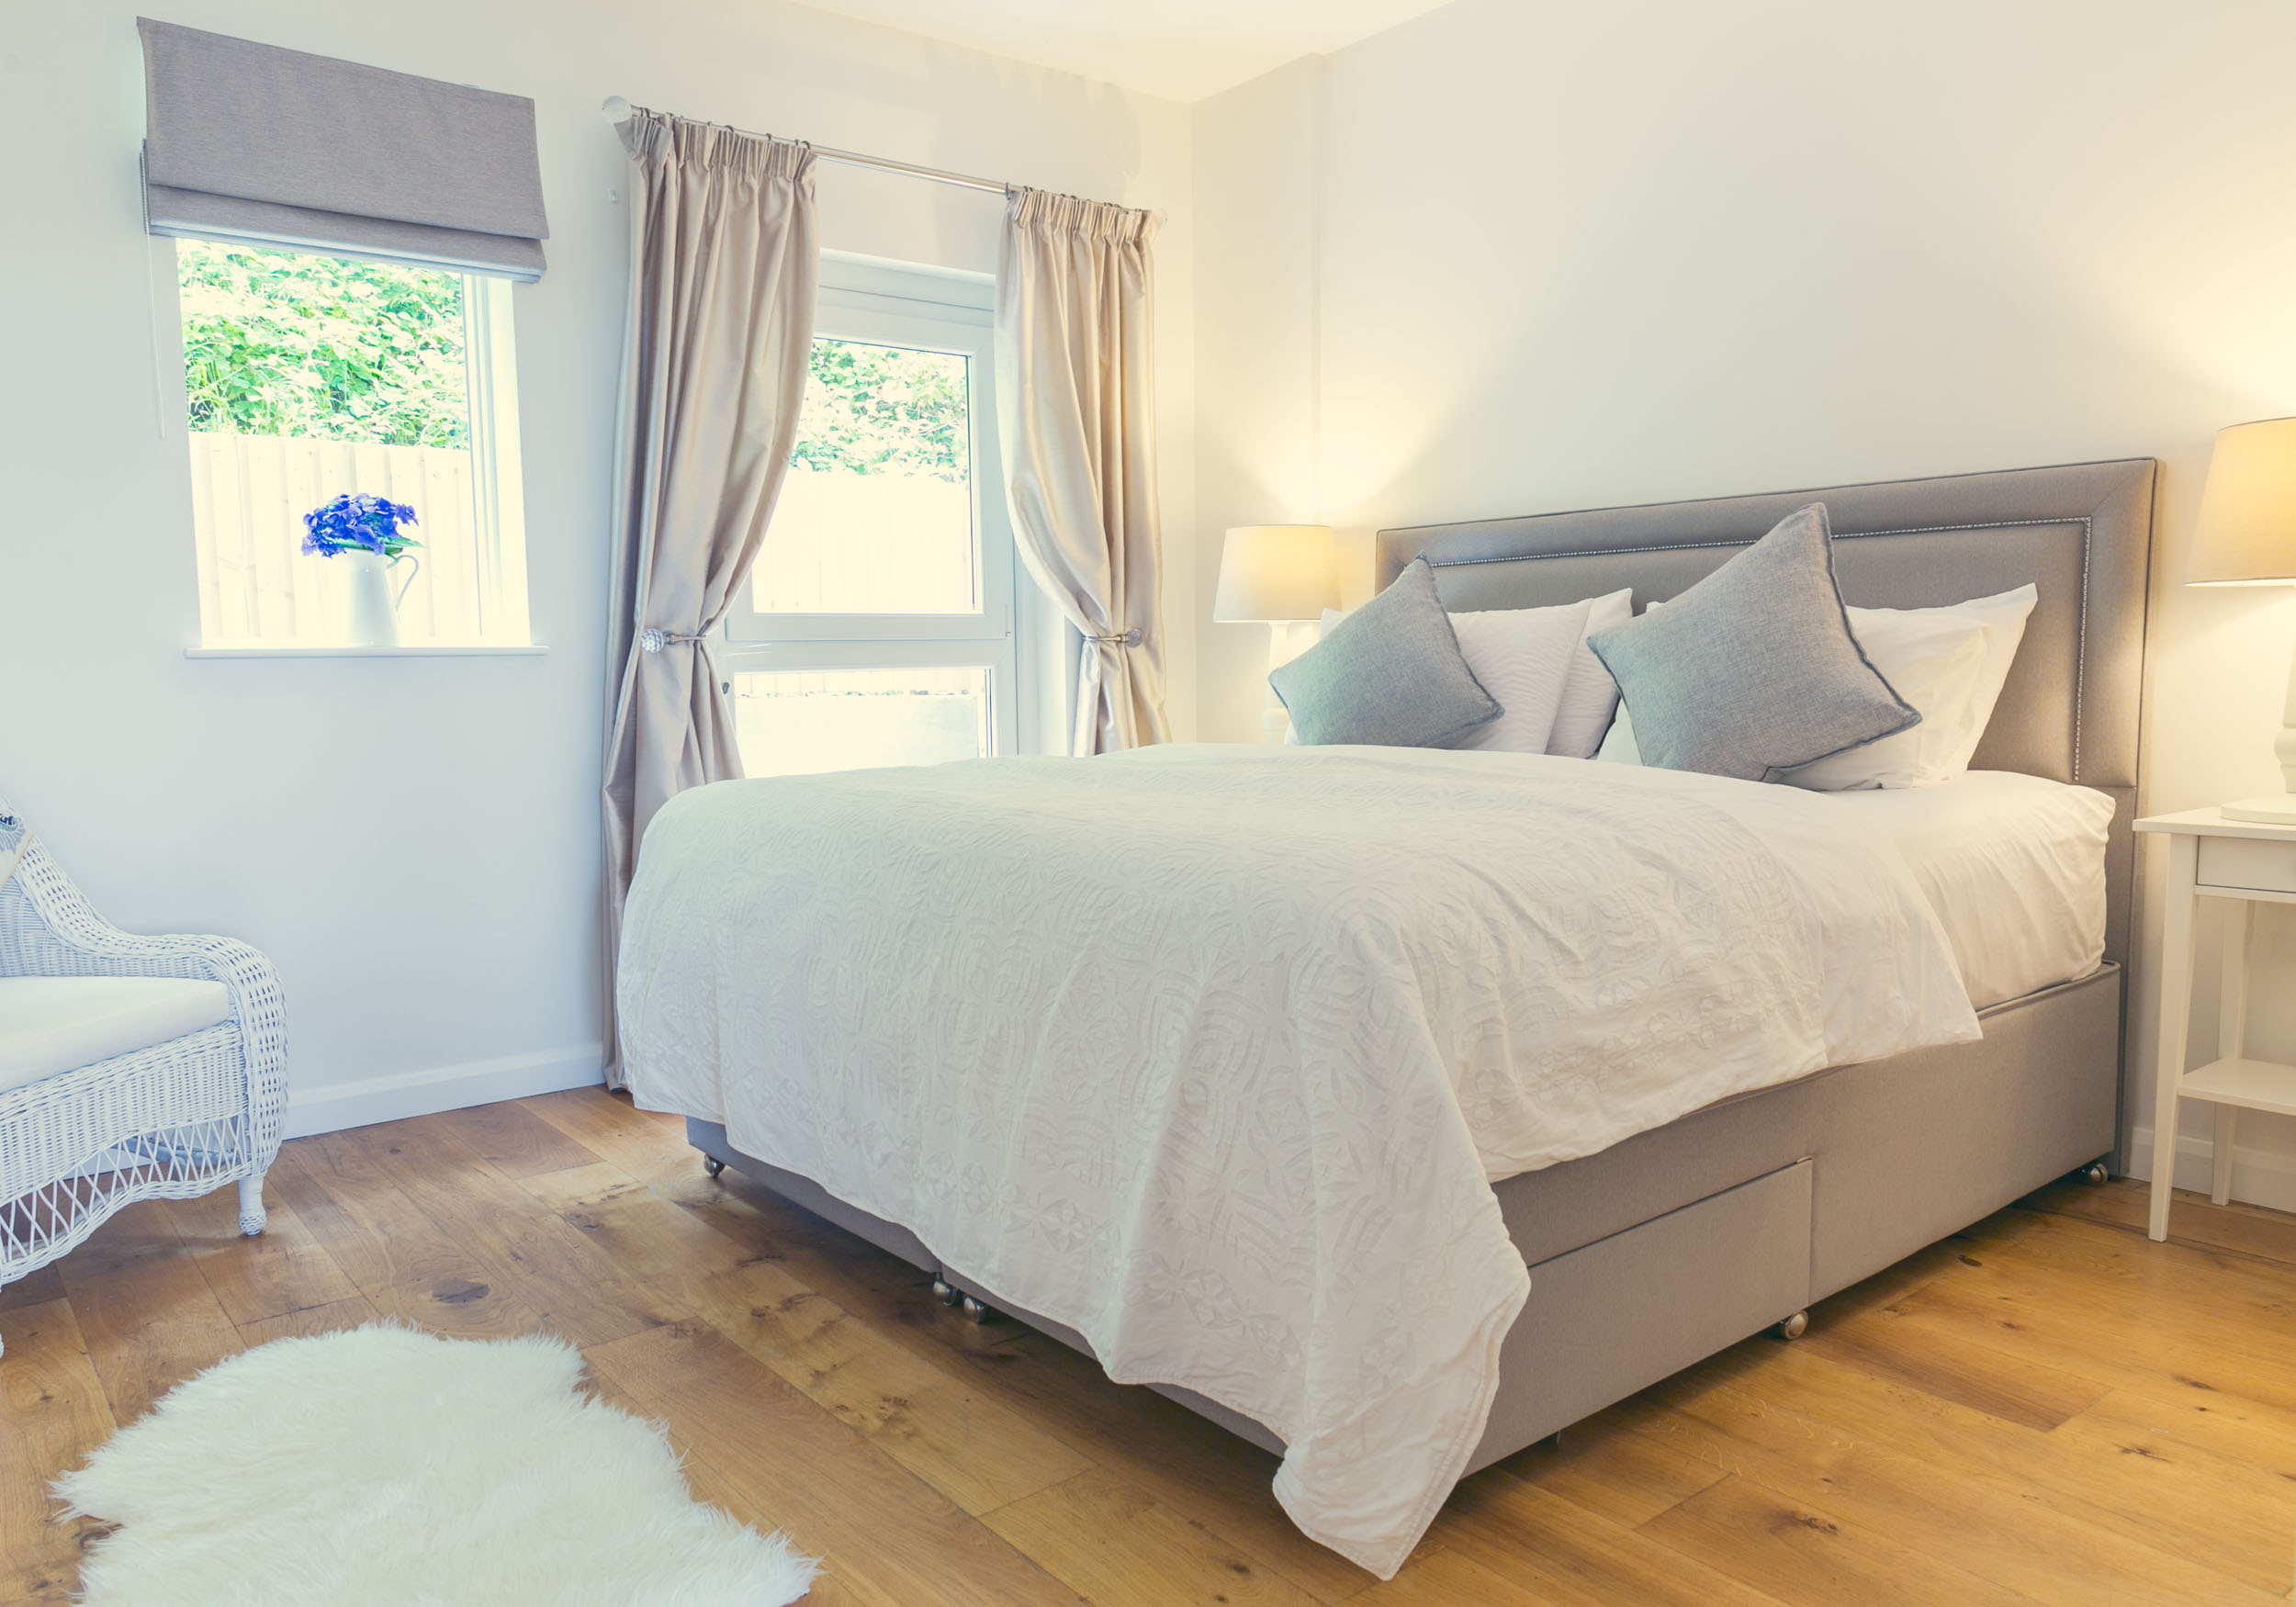 Bayview-oxwich-luxury-holiday-rental-apartment